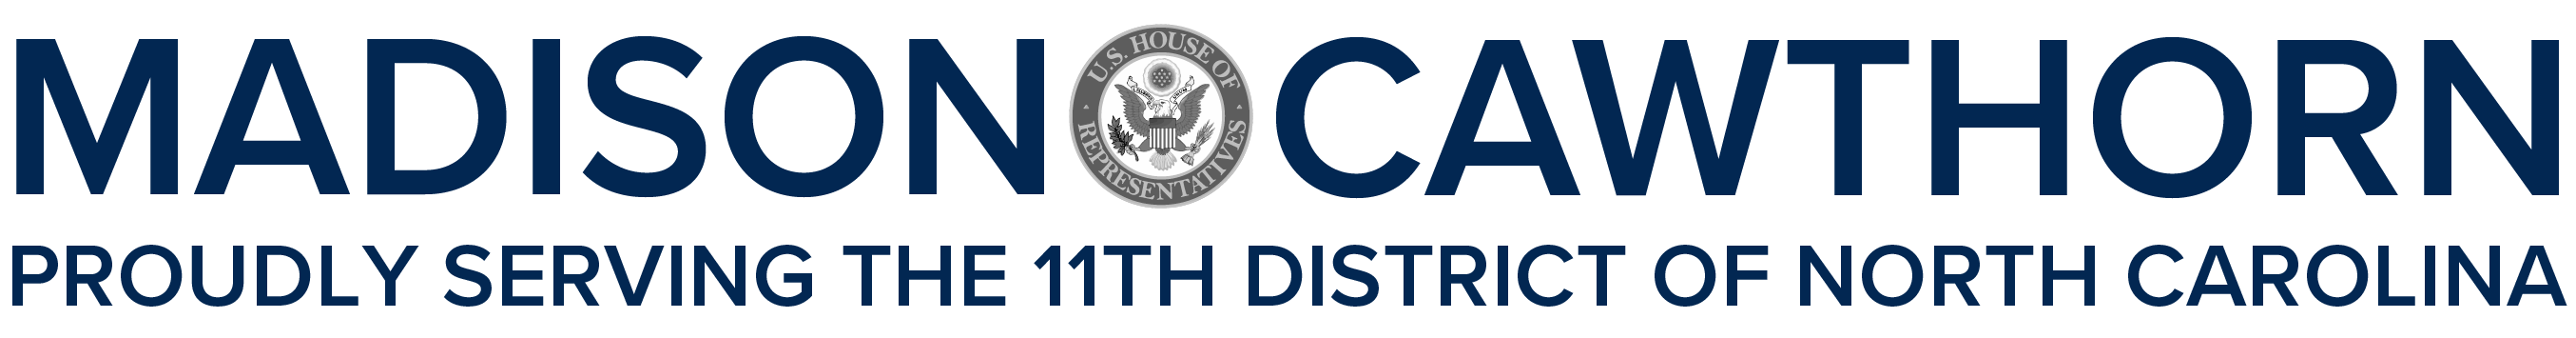 Congressman Madison Cawthorn logo